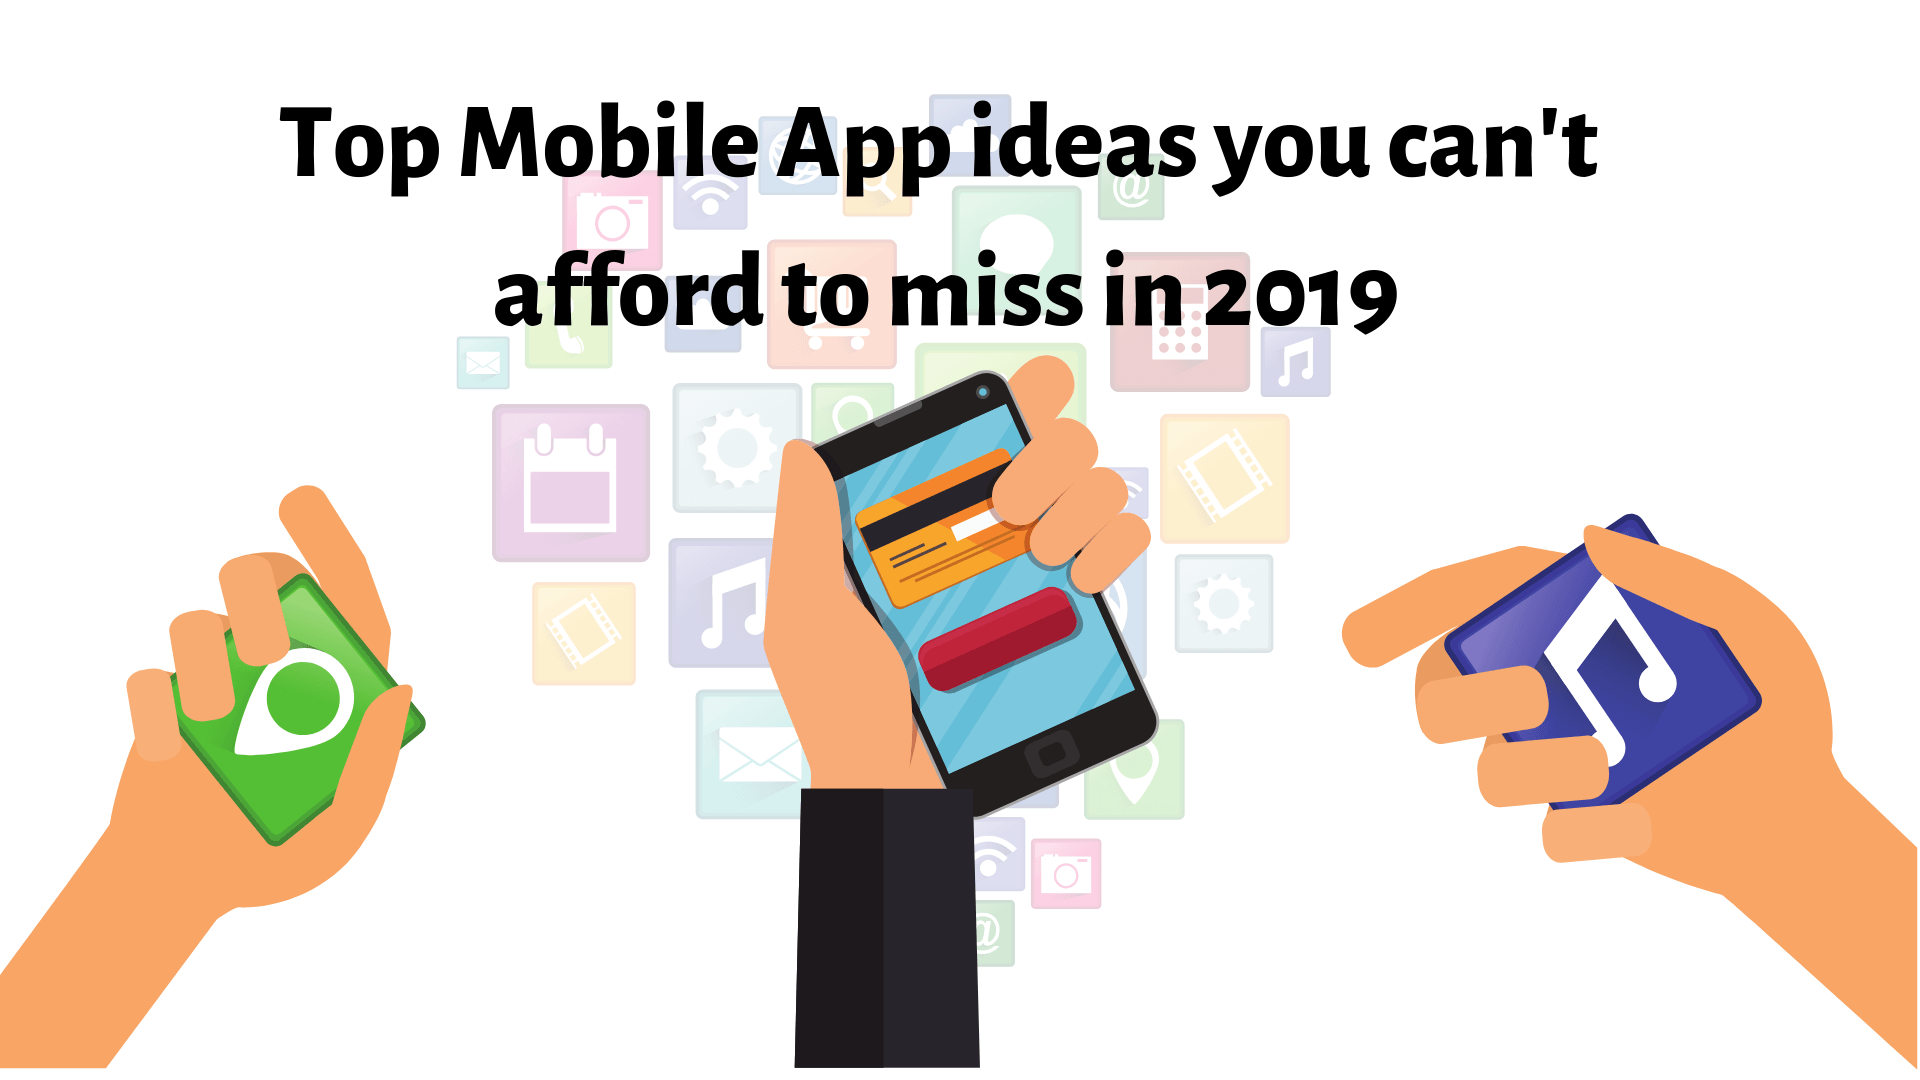 Top Mobile App ideas You Can't Miss in 2019